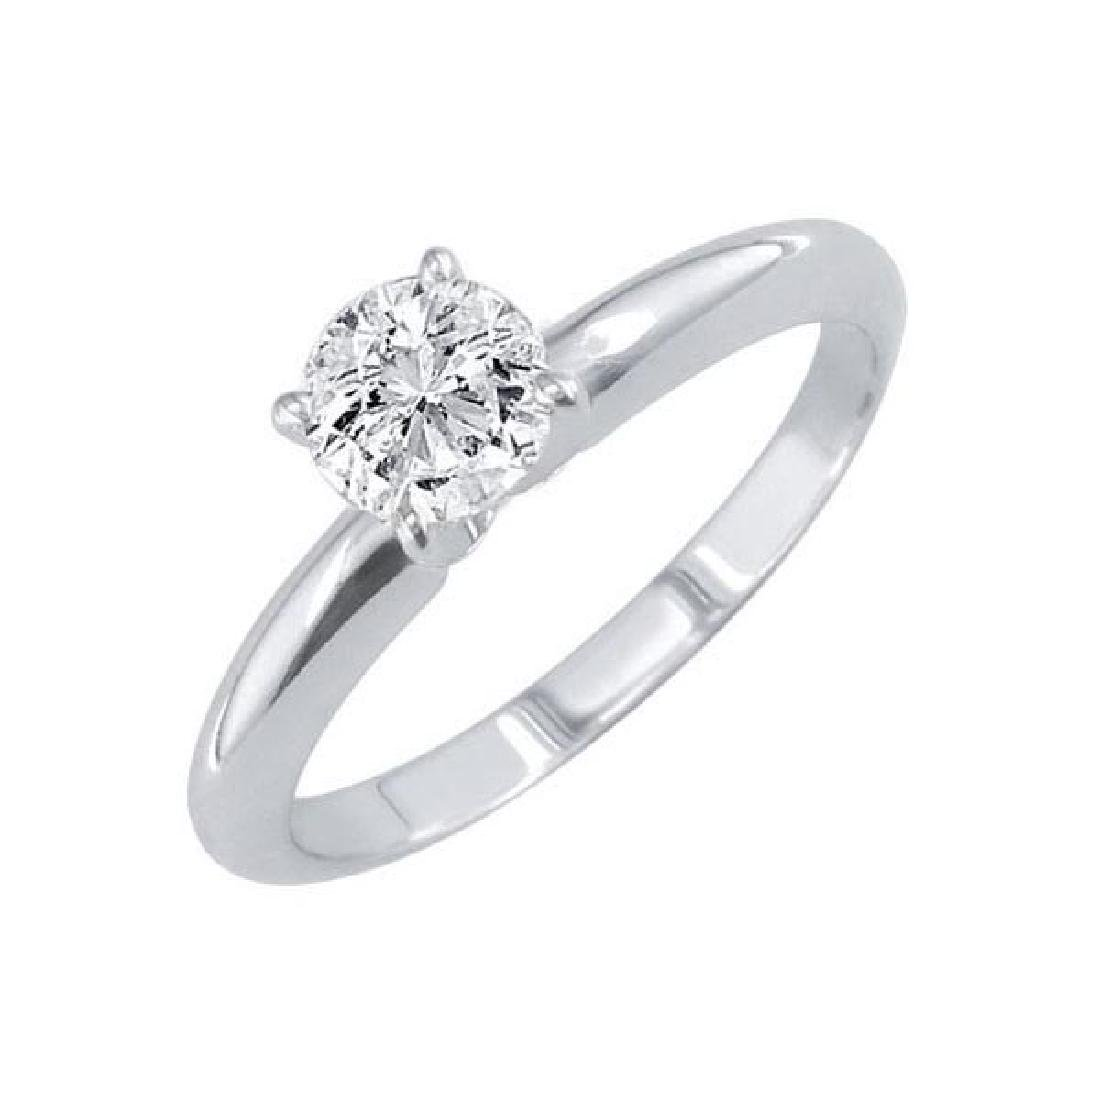 Certified 0.43 CTW Round Diamond Solitaire 14k Ring E/S